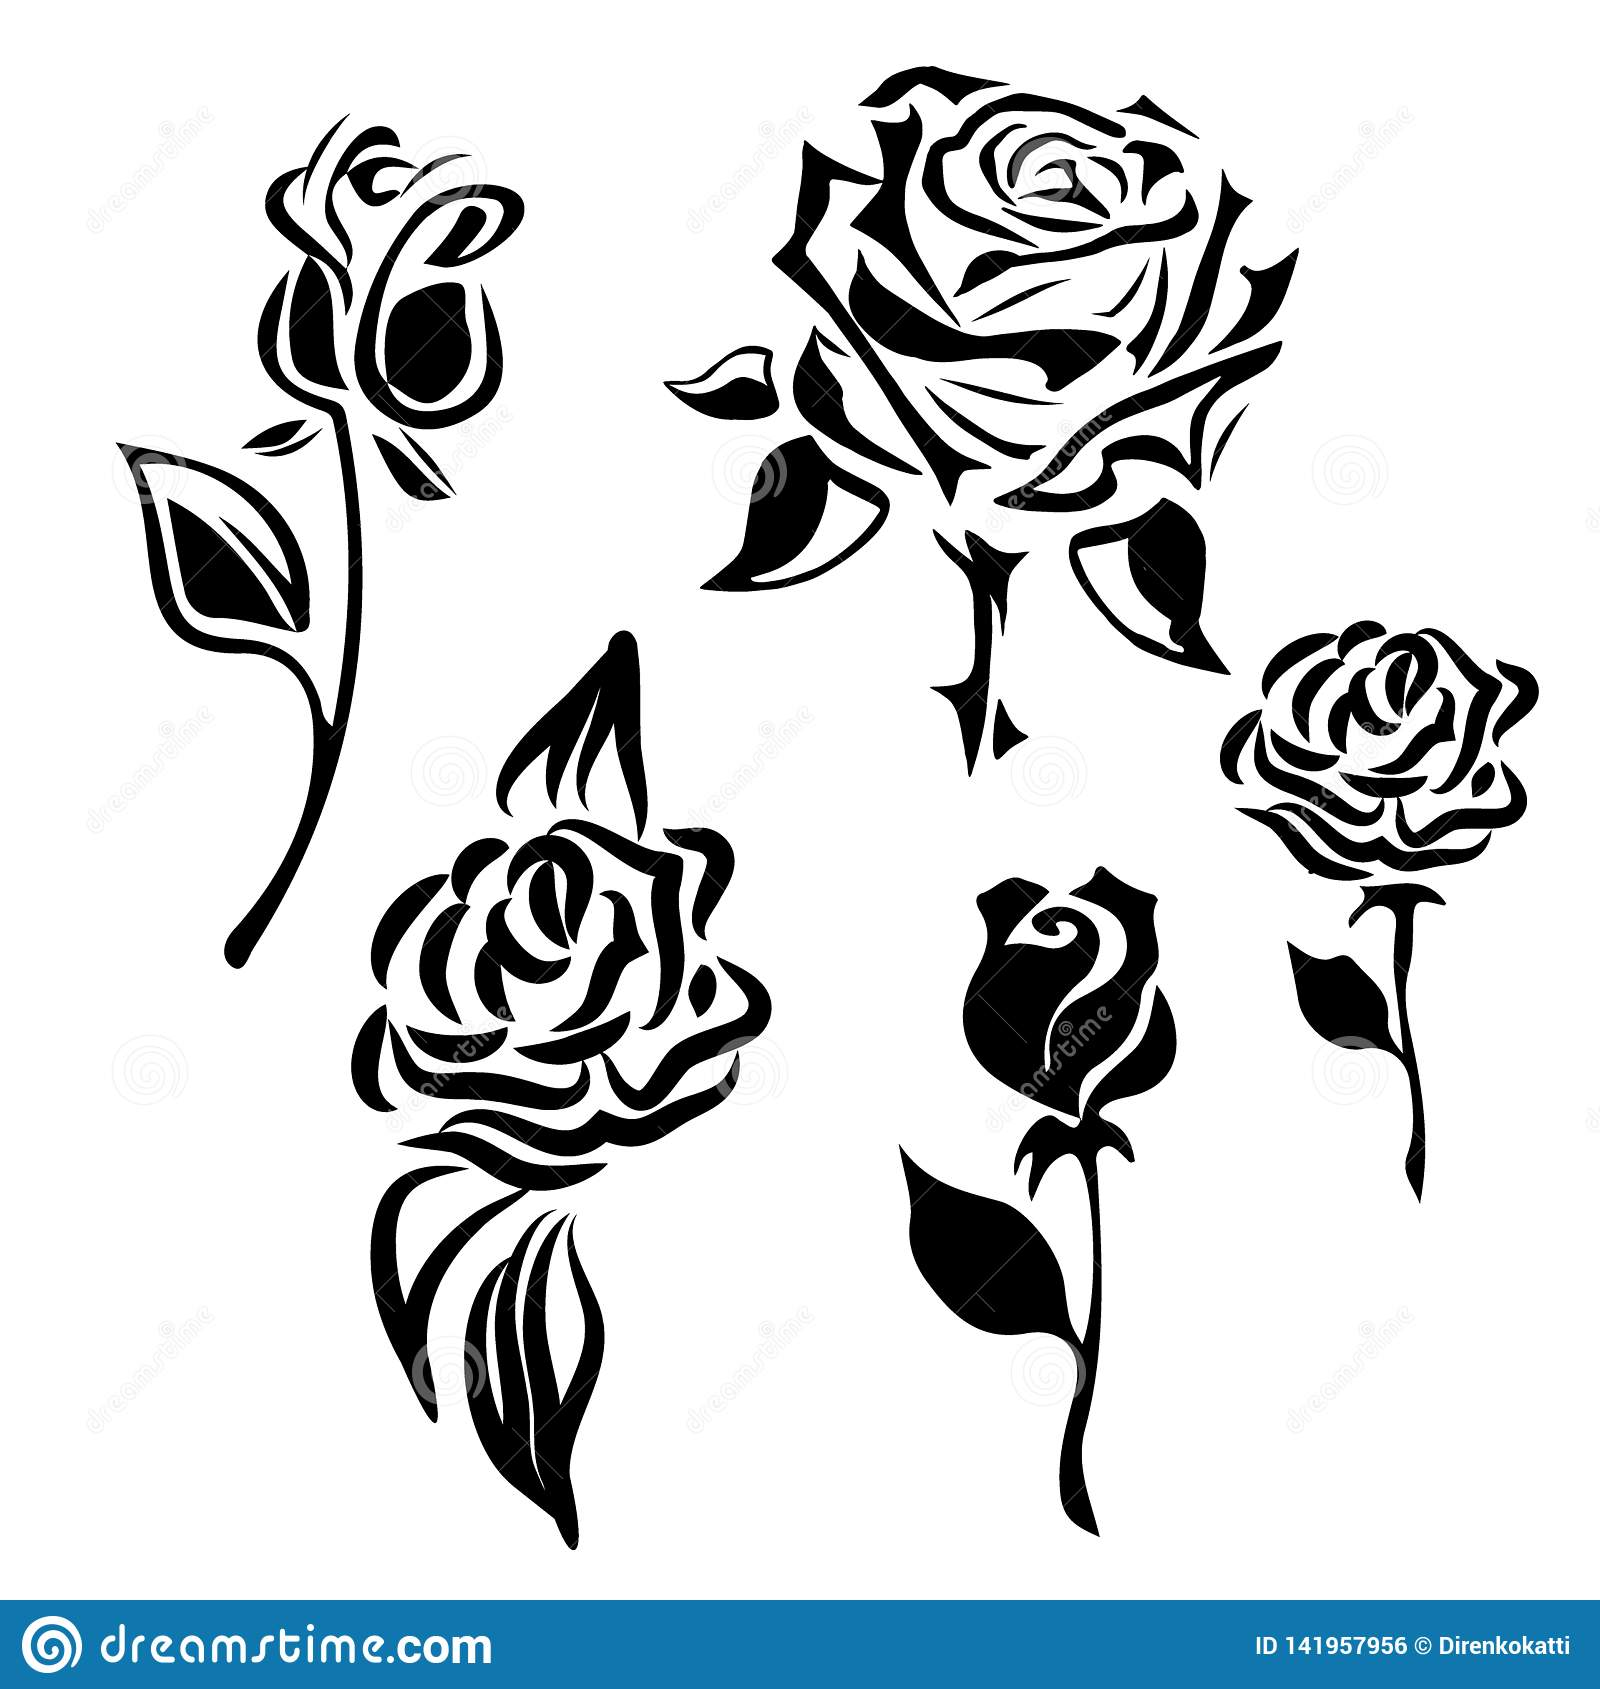 Flower Icon Set Of Decorative Rose Silhouettes Vector Rose Stock Vector Illustration Of Monochrome Leaf 141957956